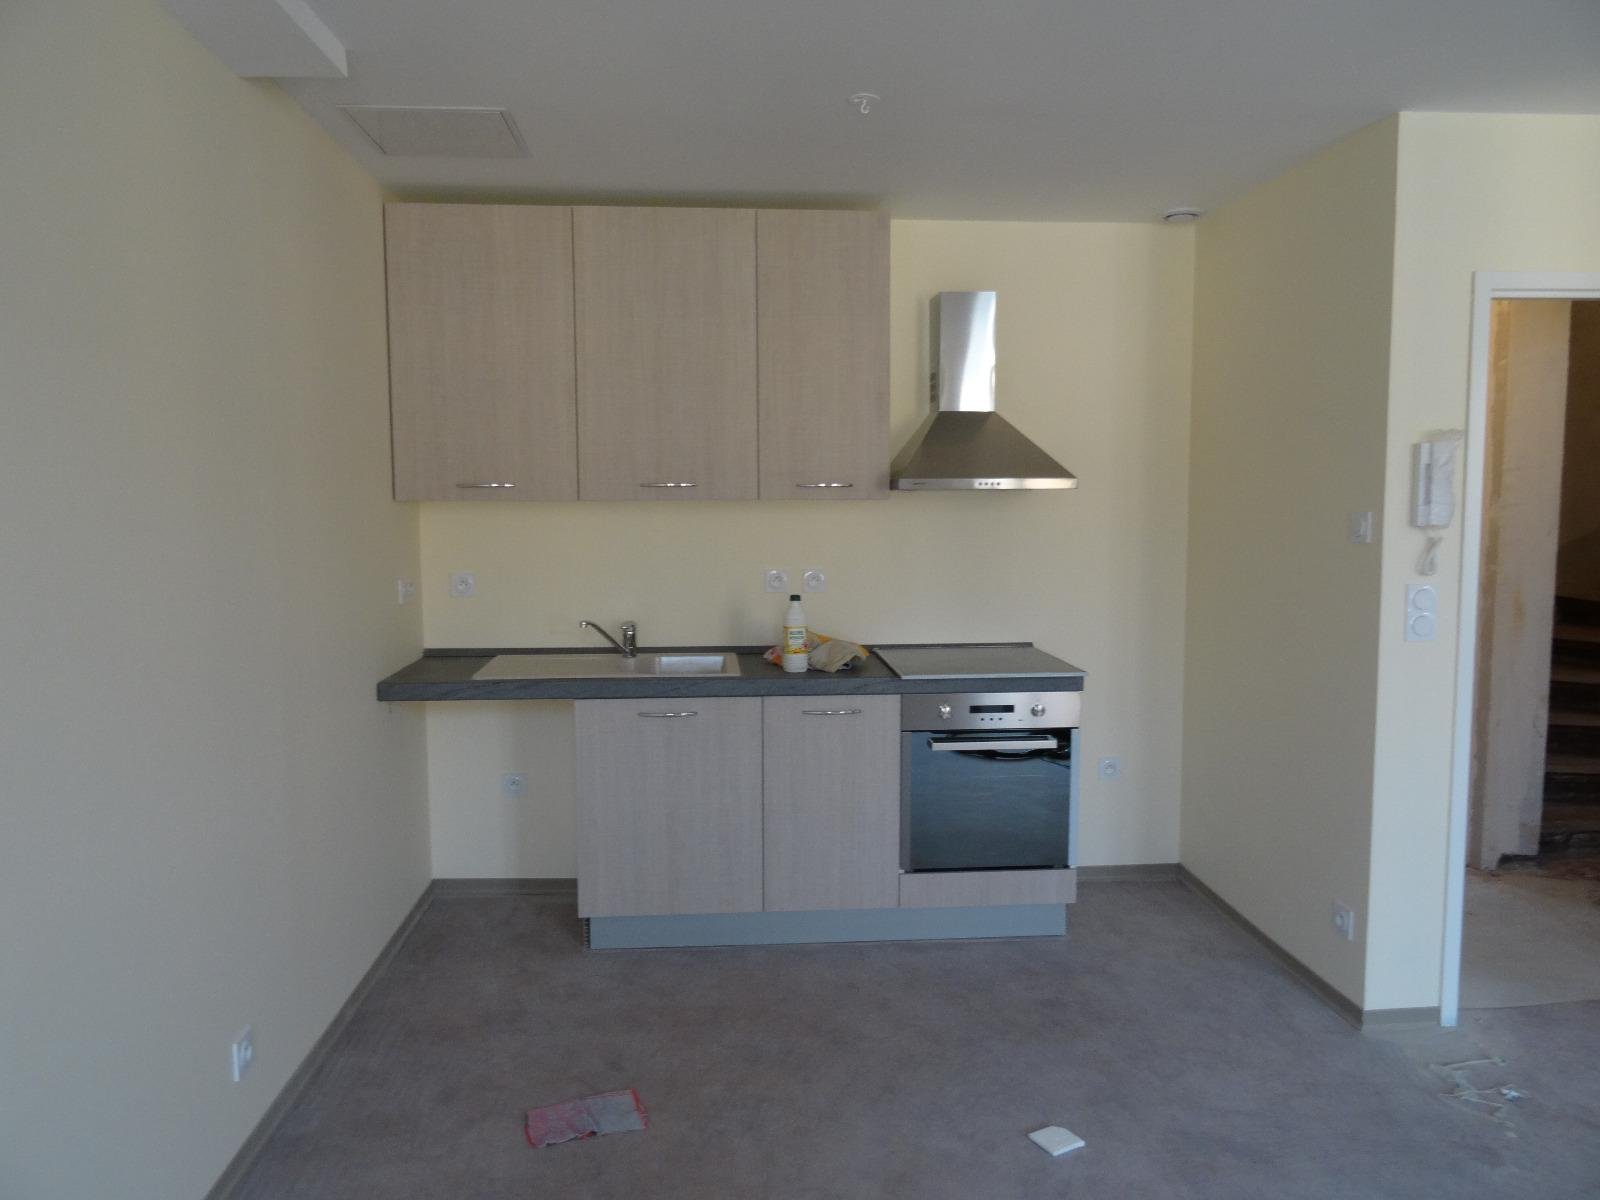 Location  Appartement  42 m2